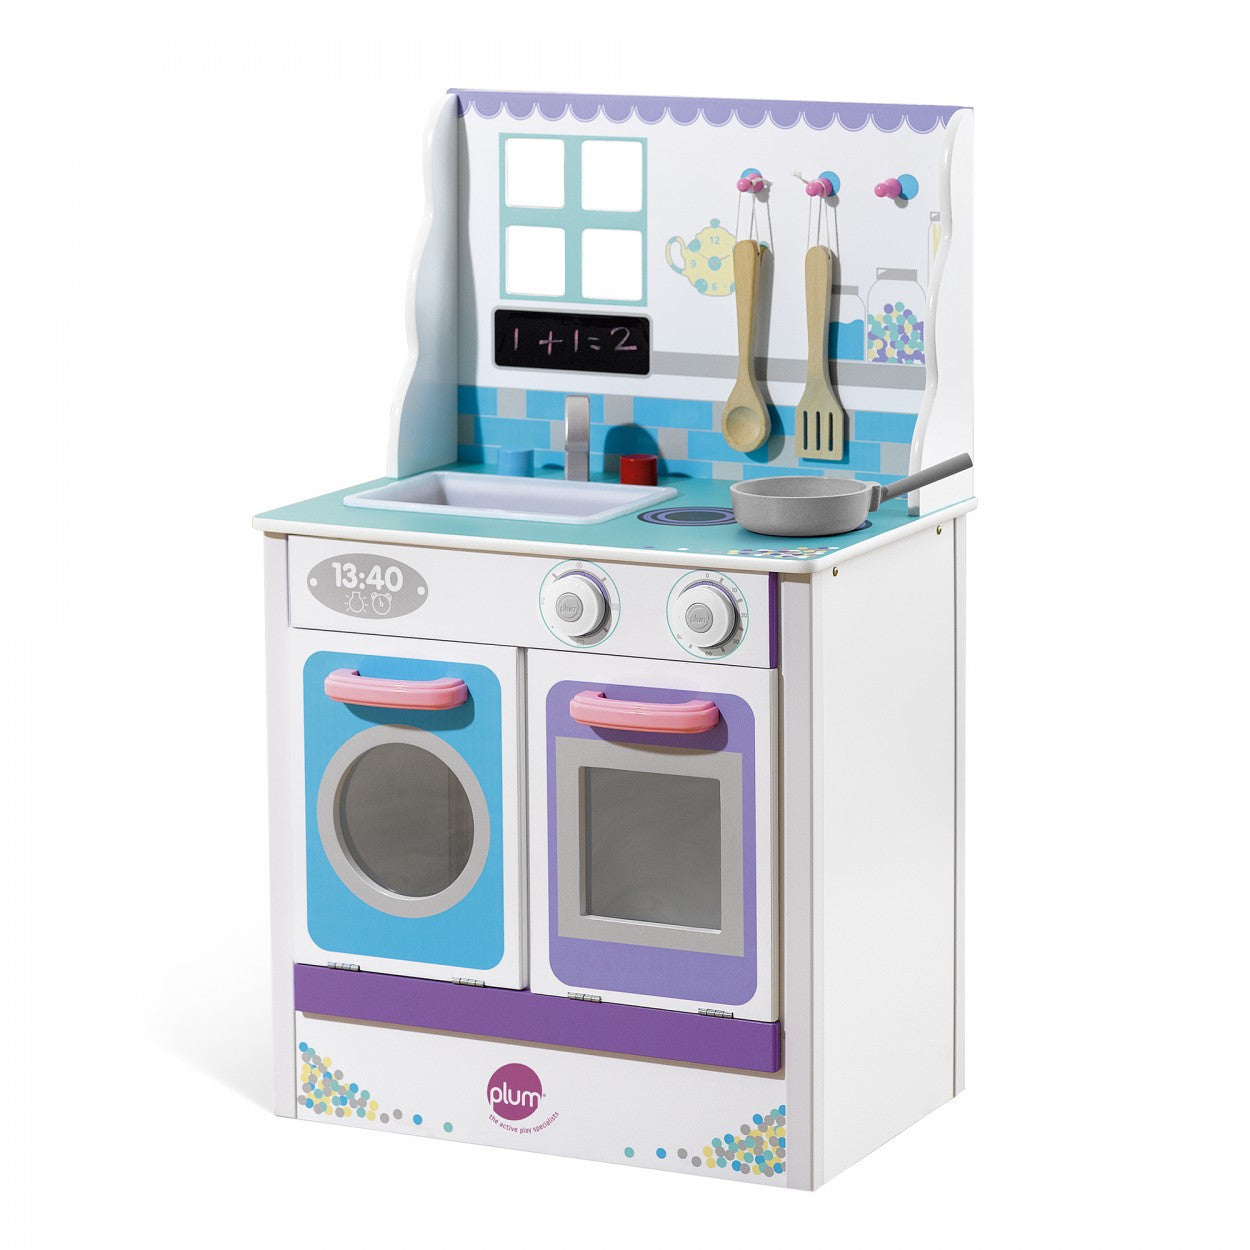 Plum Cook-a-Lot Chive Role-Play Kitchen with Accessories and ...